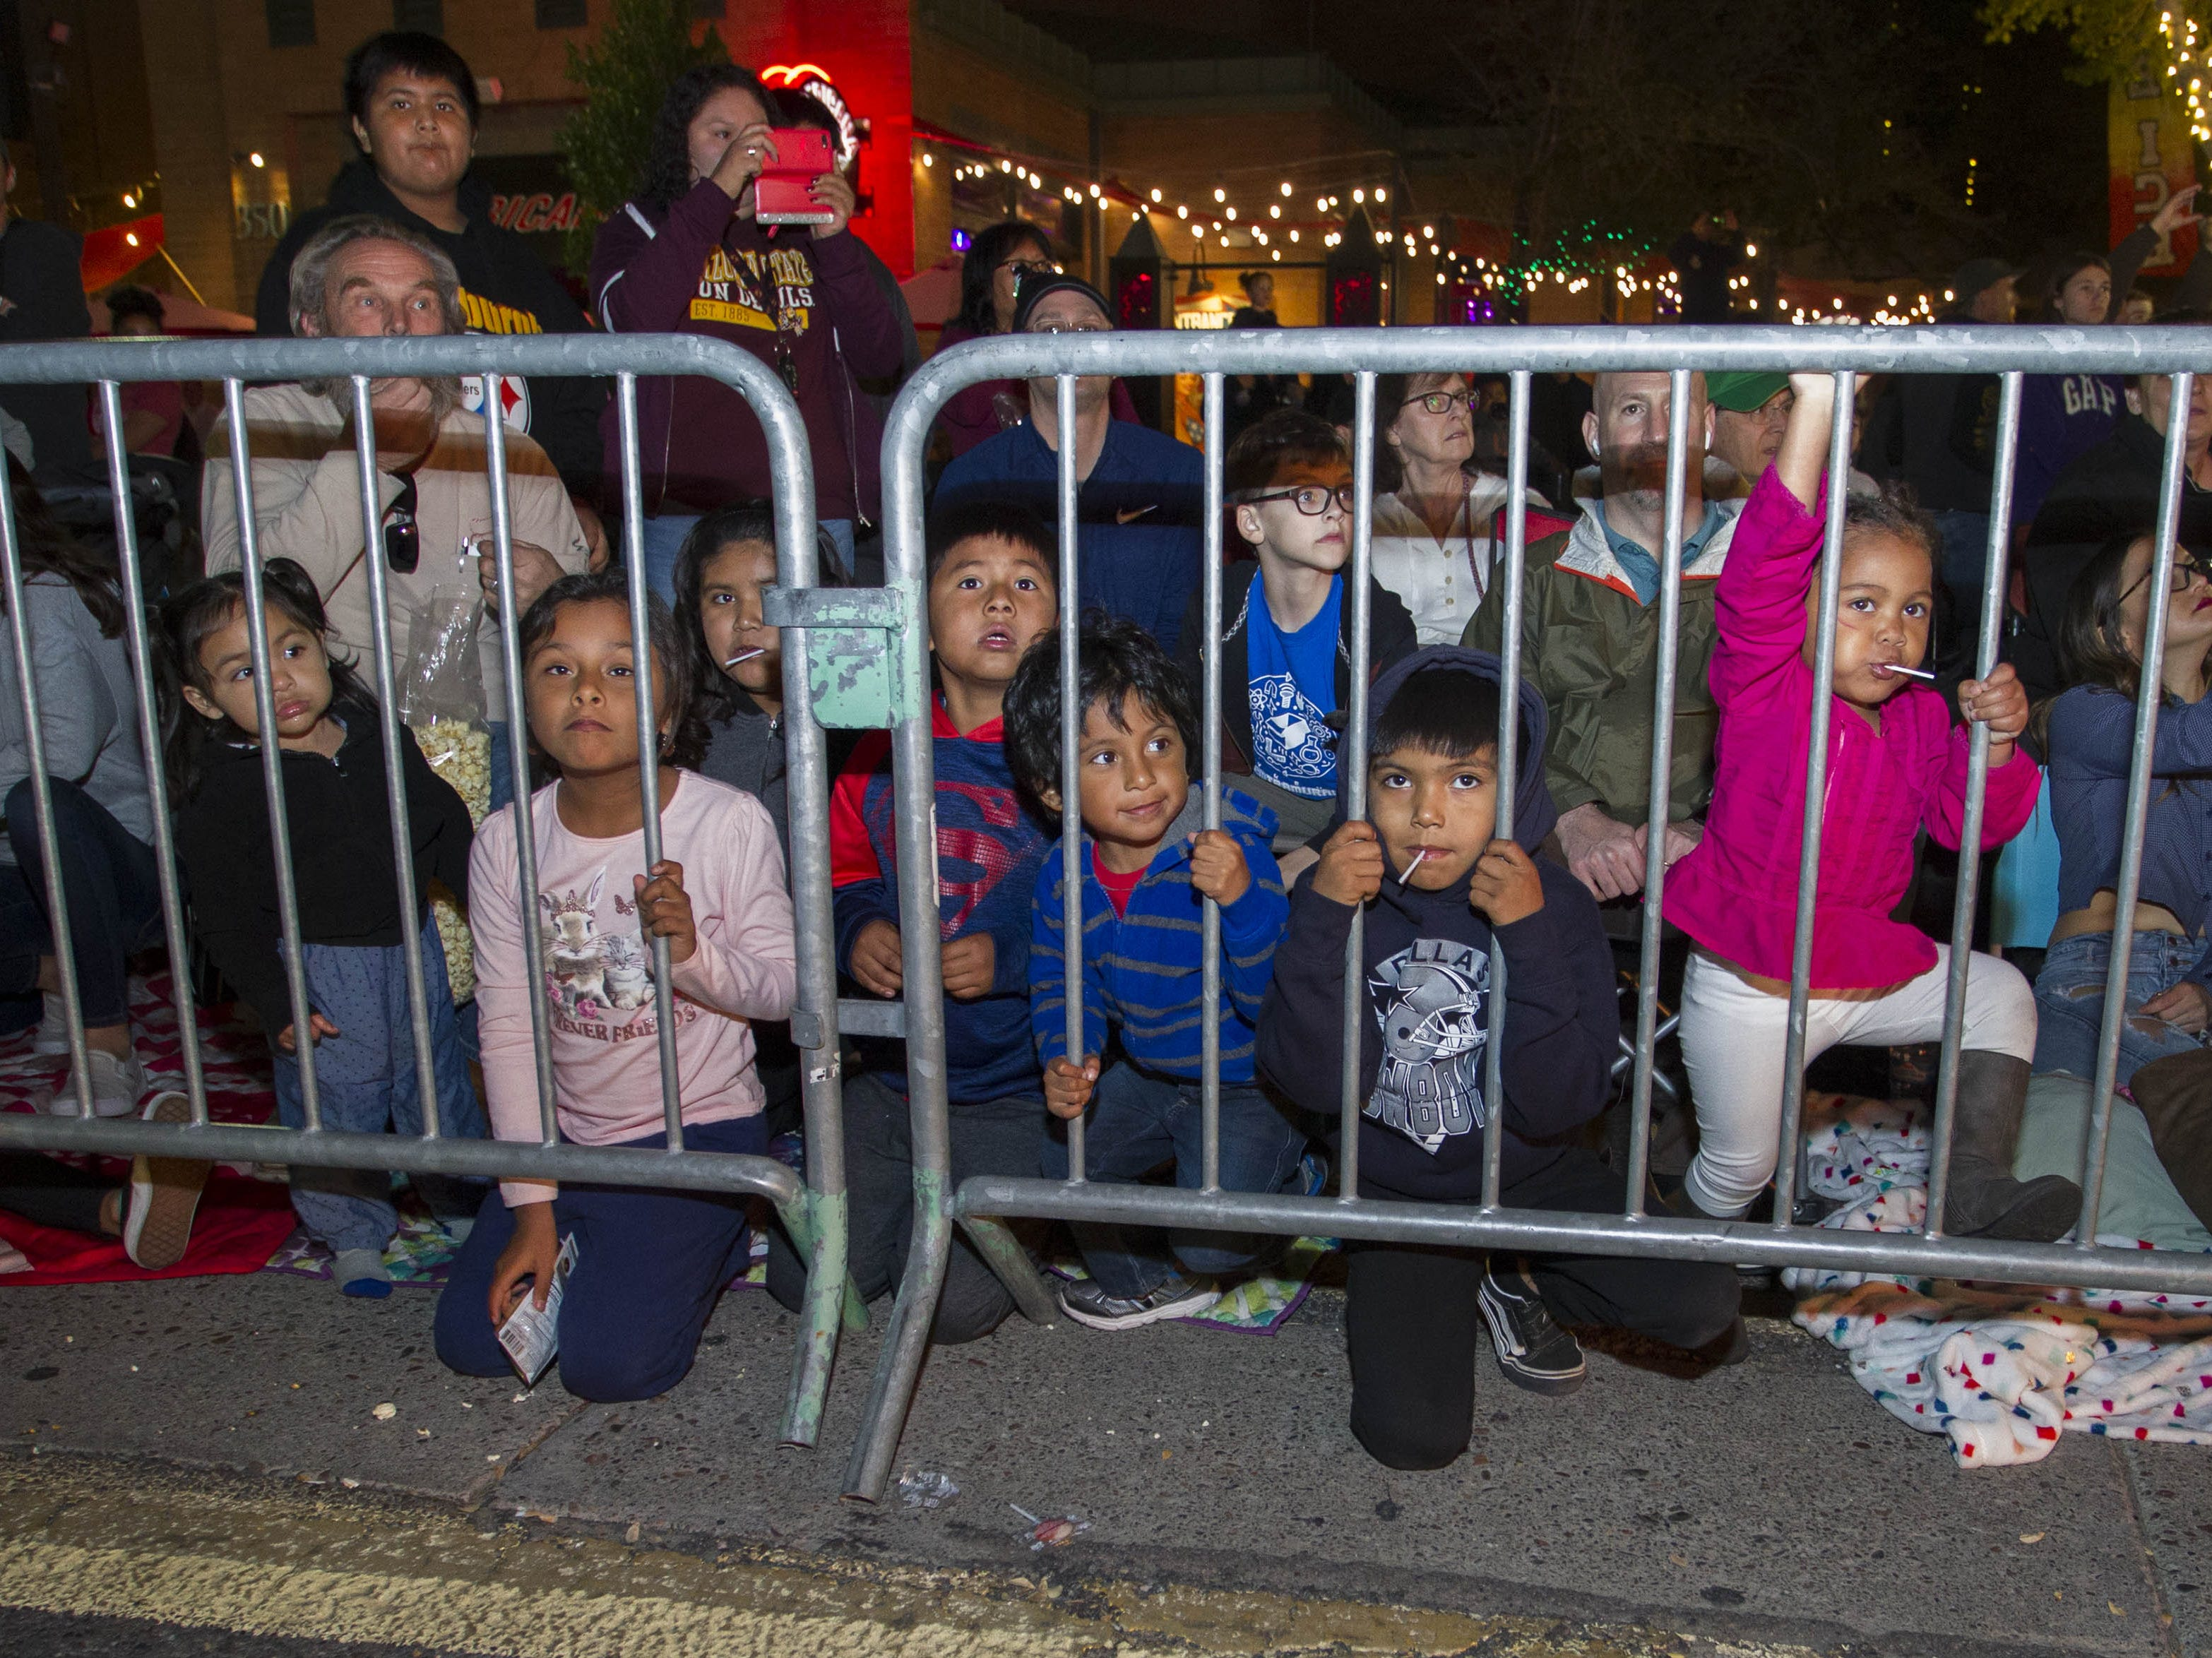 Kids watch with fascination as floats make their way down Mill Ave. during the 2018 Fantasy of Lights Parade in downtown Tempe Friday, Nov. 23, 2018.